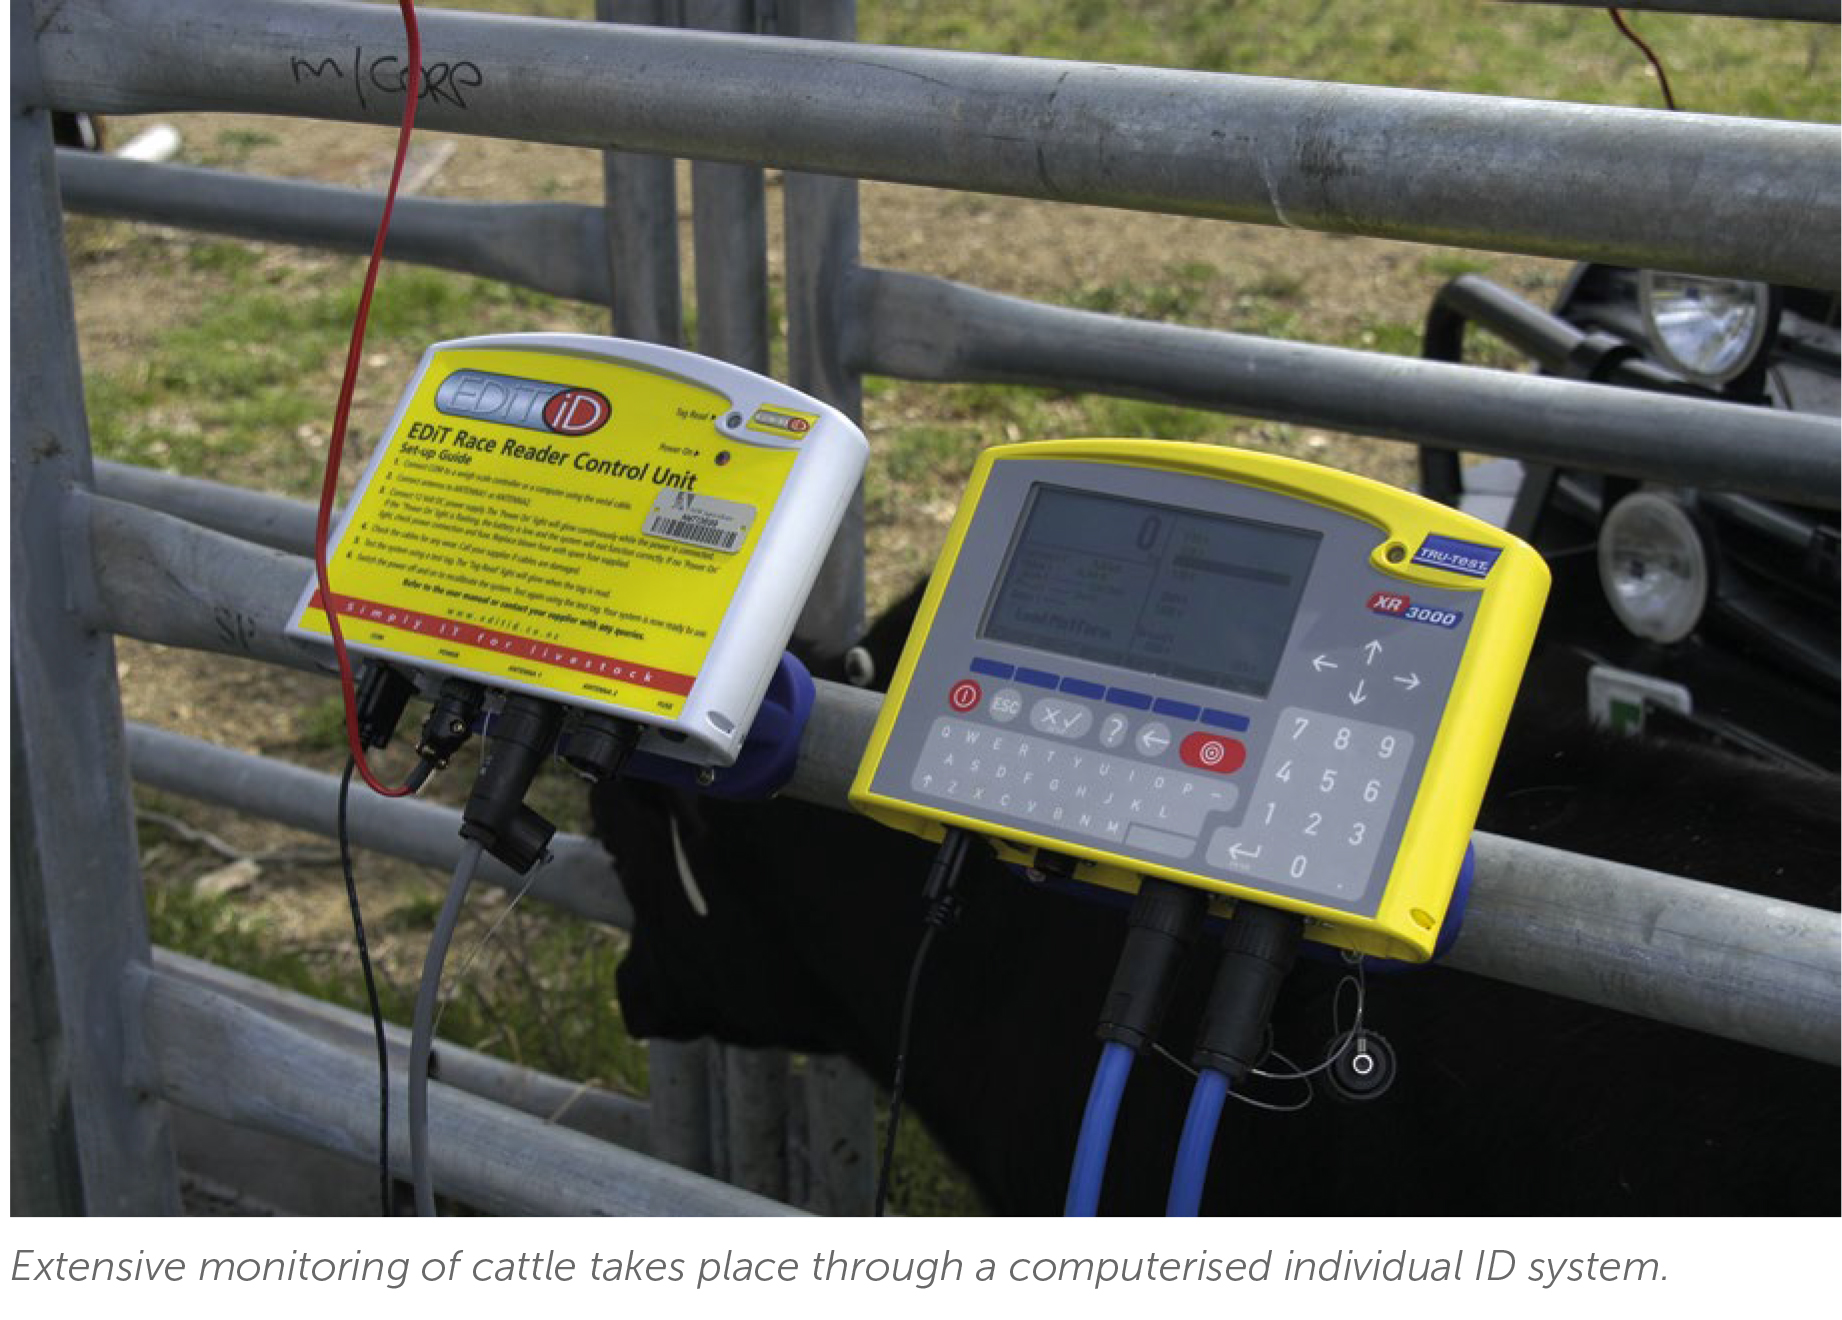 Extensive monitoring of cattle through a ID system